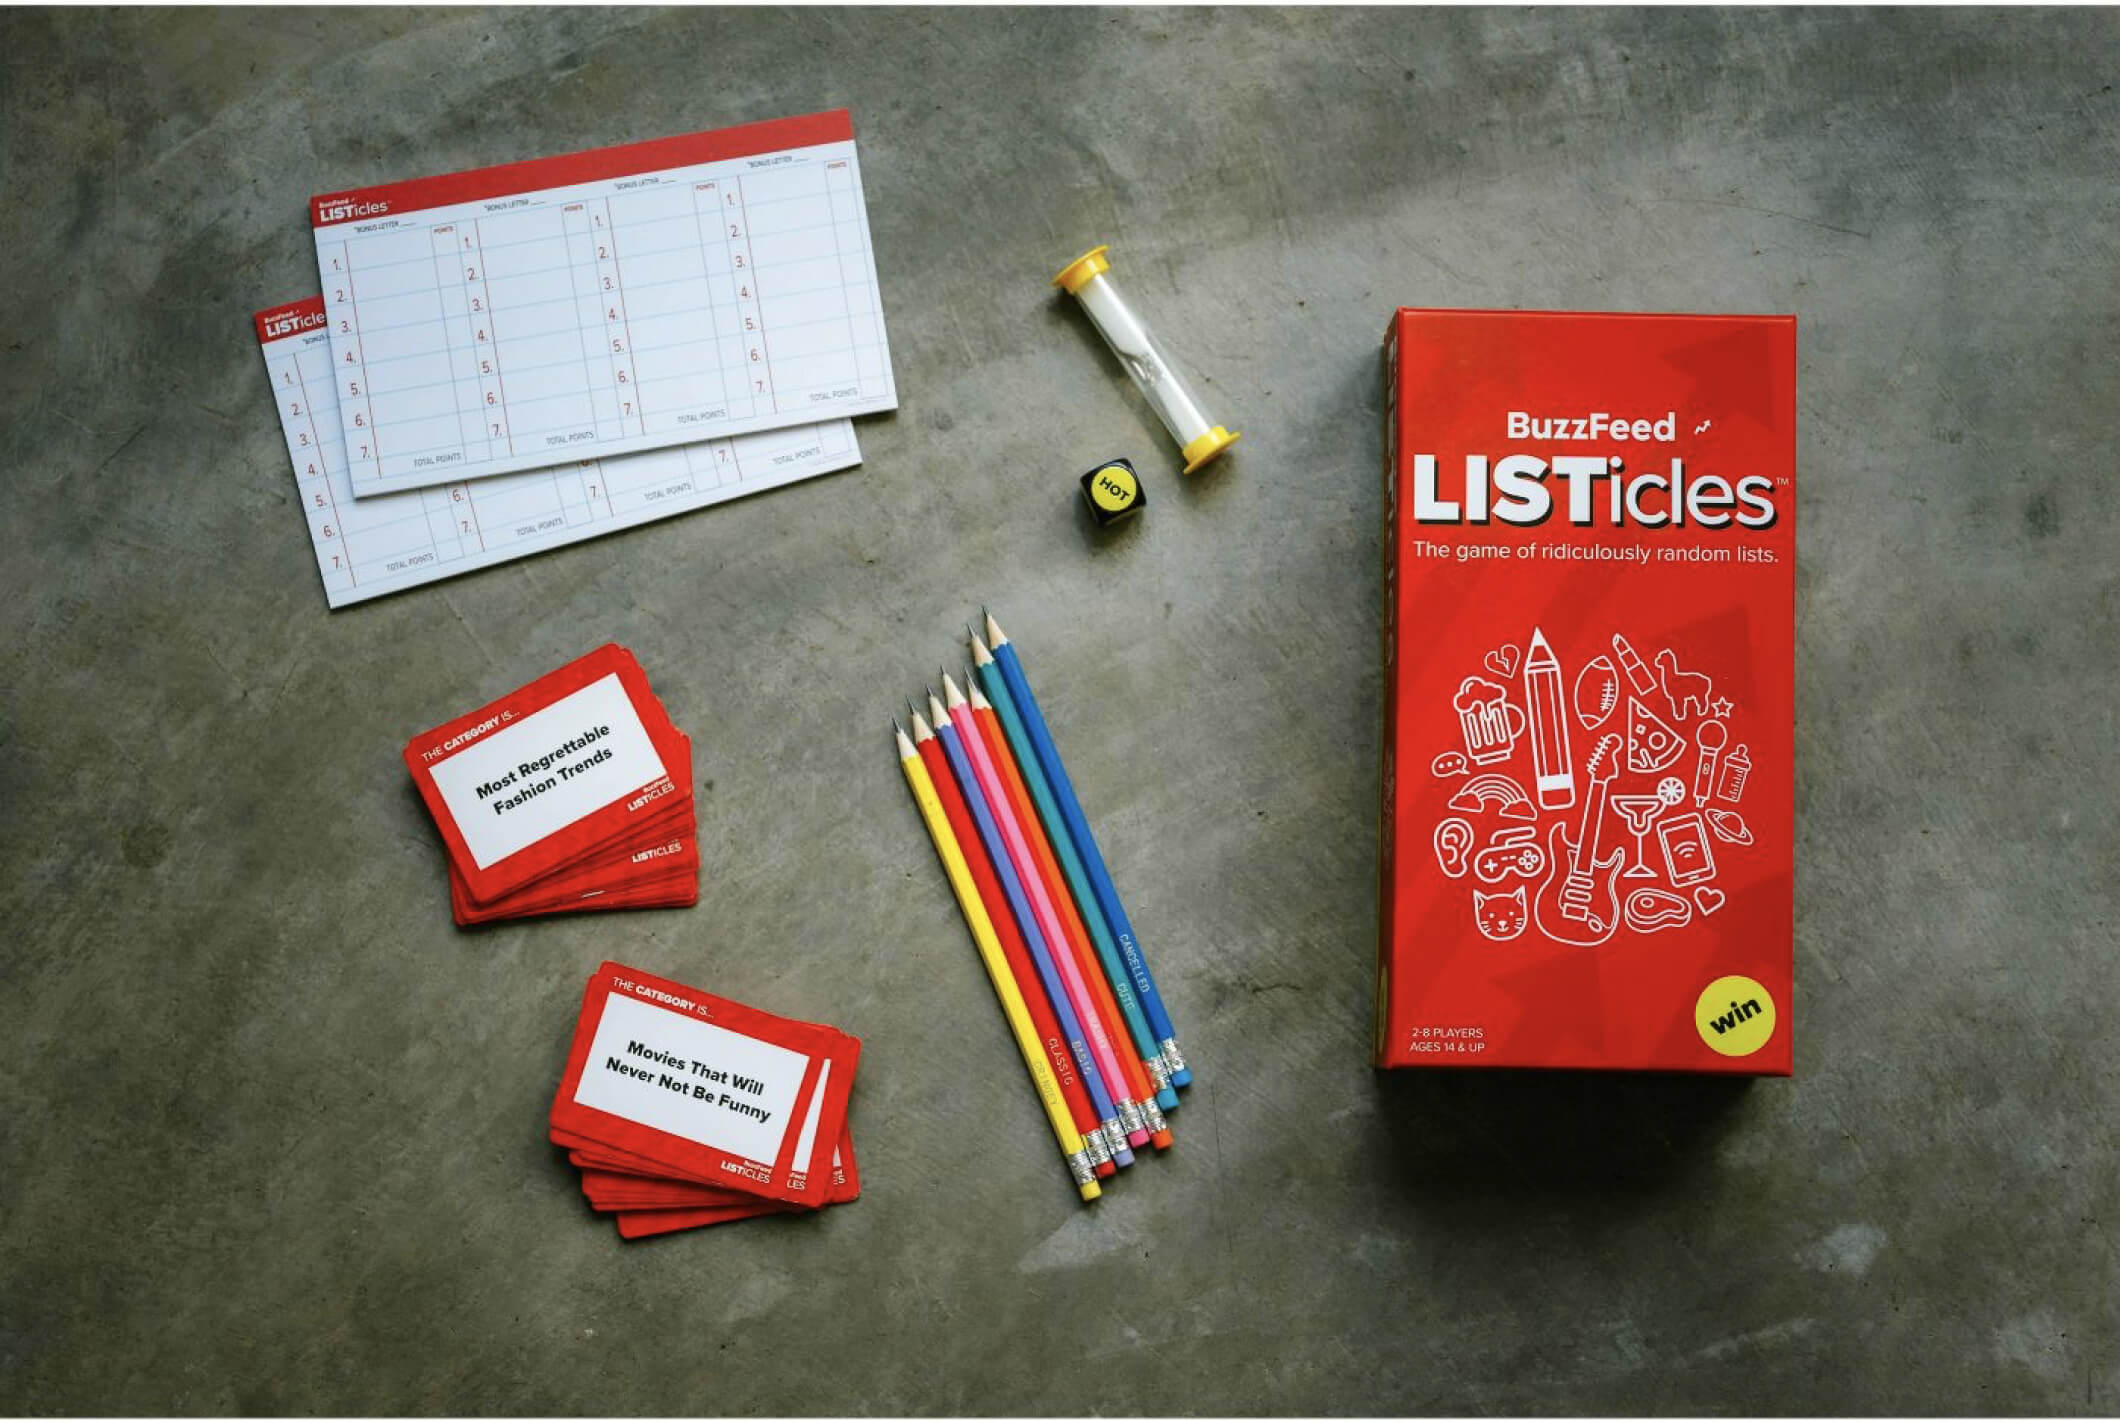 Listicals, the first game to come out of the BuzzFeed Game imprint